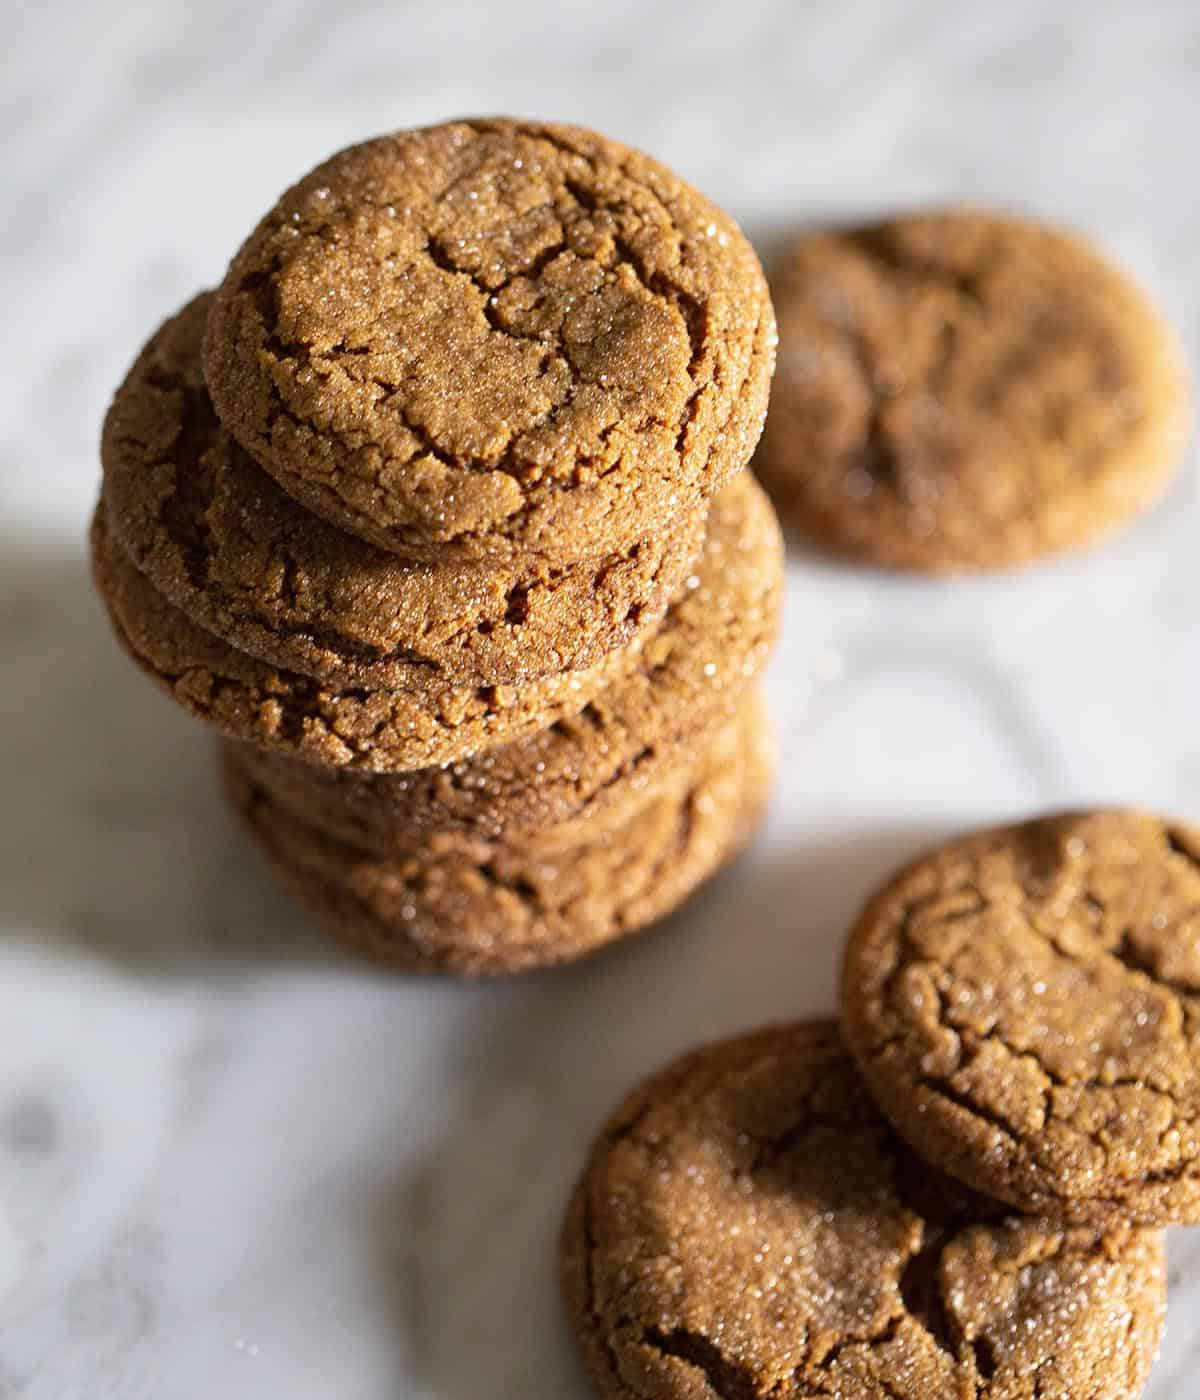 Molasses cookies stacked on a marble table.